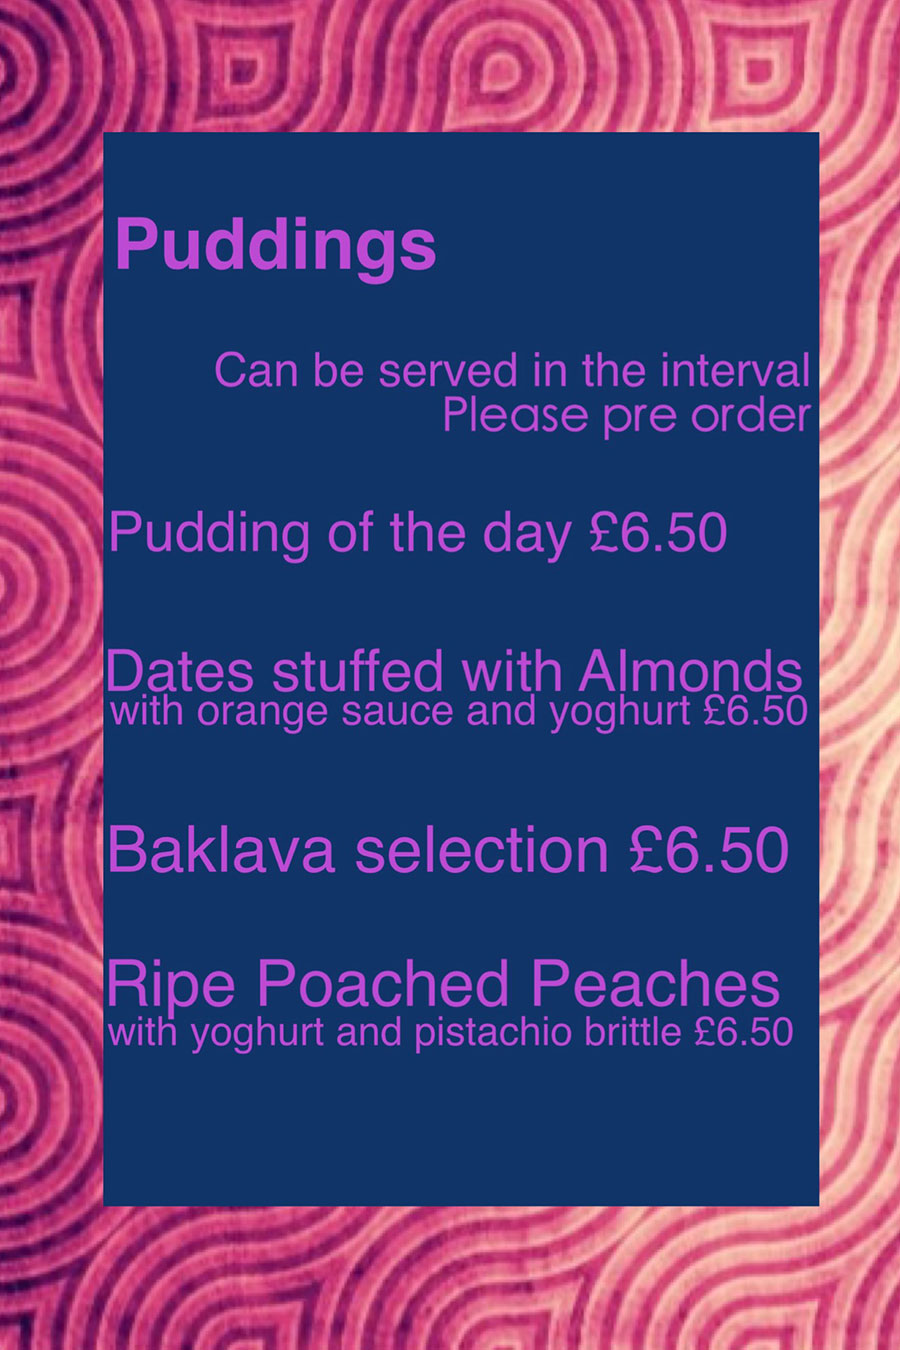 Puddings